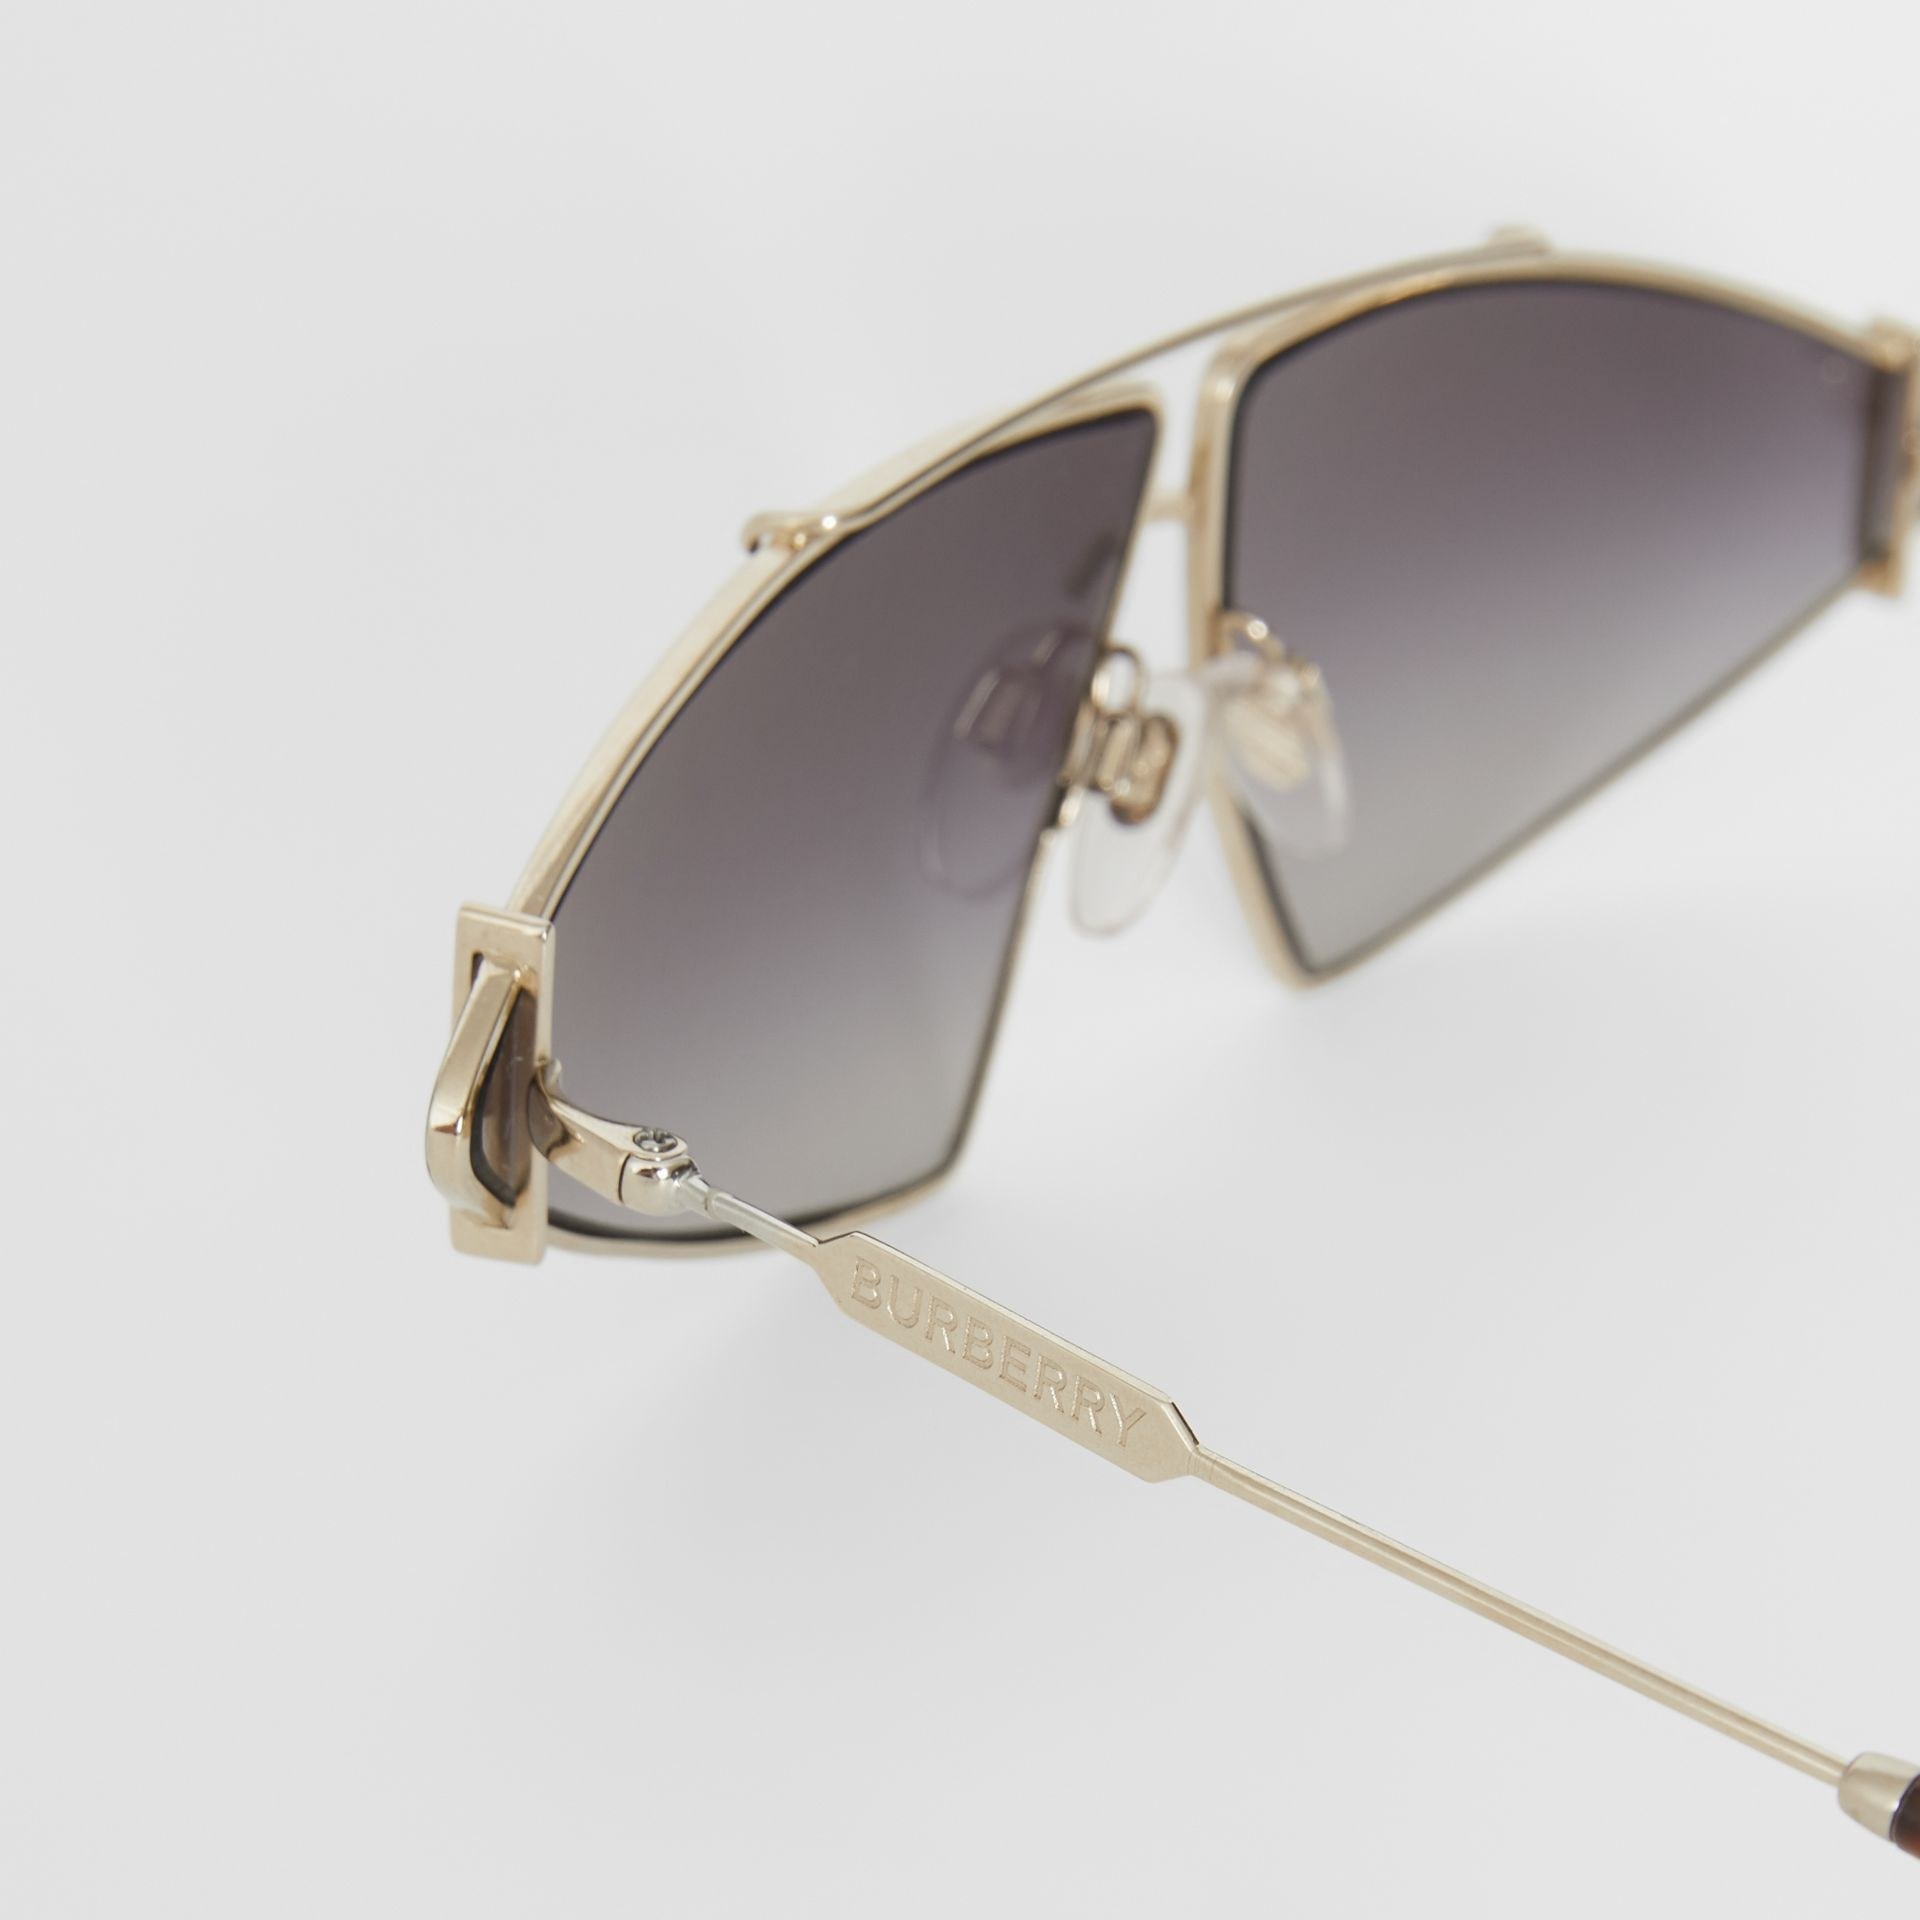 Gold-plated Triangular Frame Sunglasses in Black - Women | Burberry United States - gallery image 5